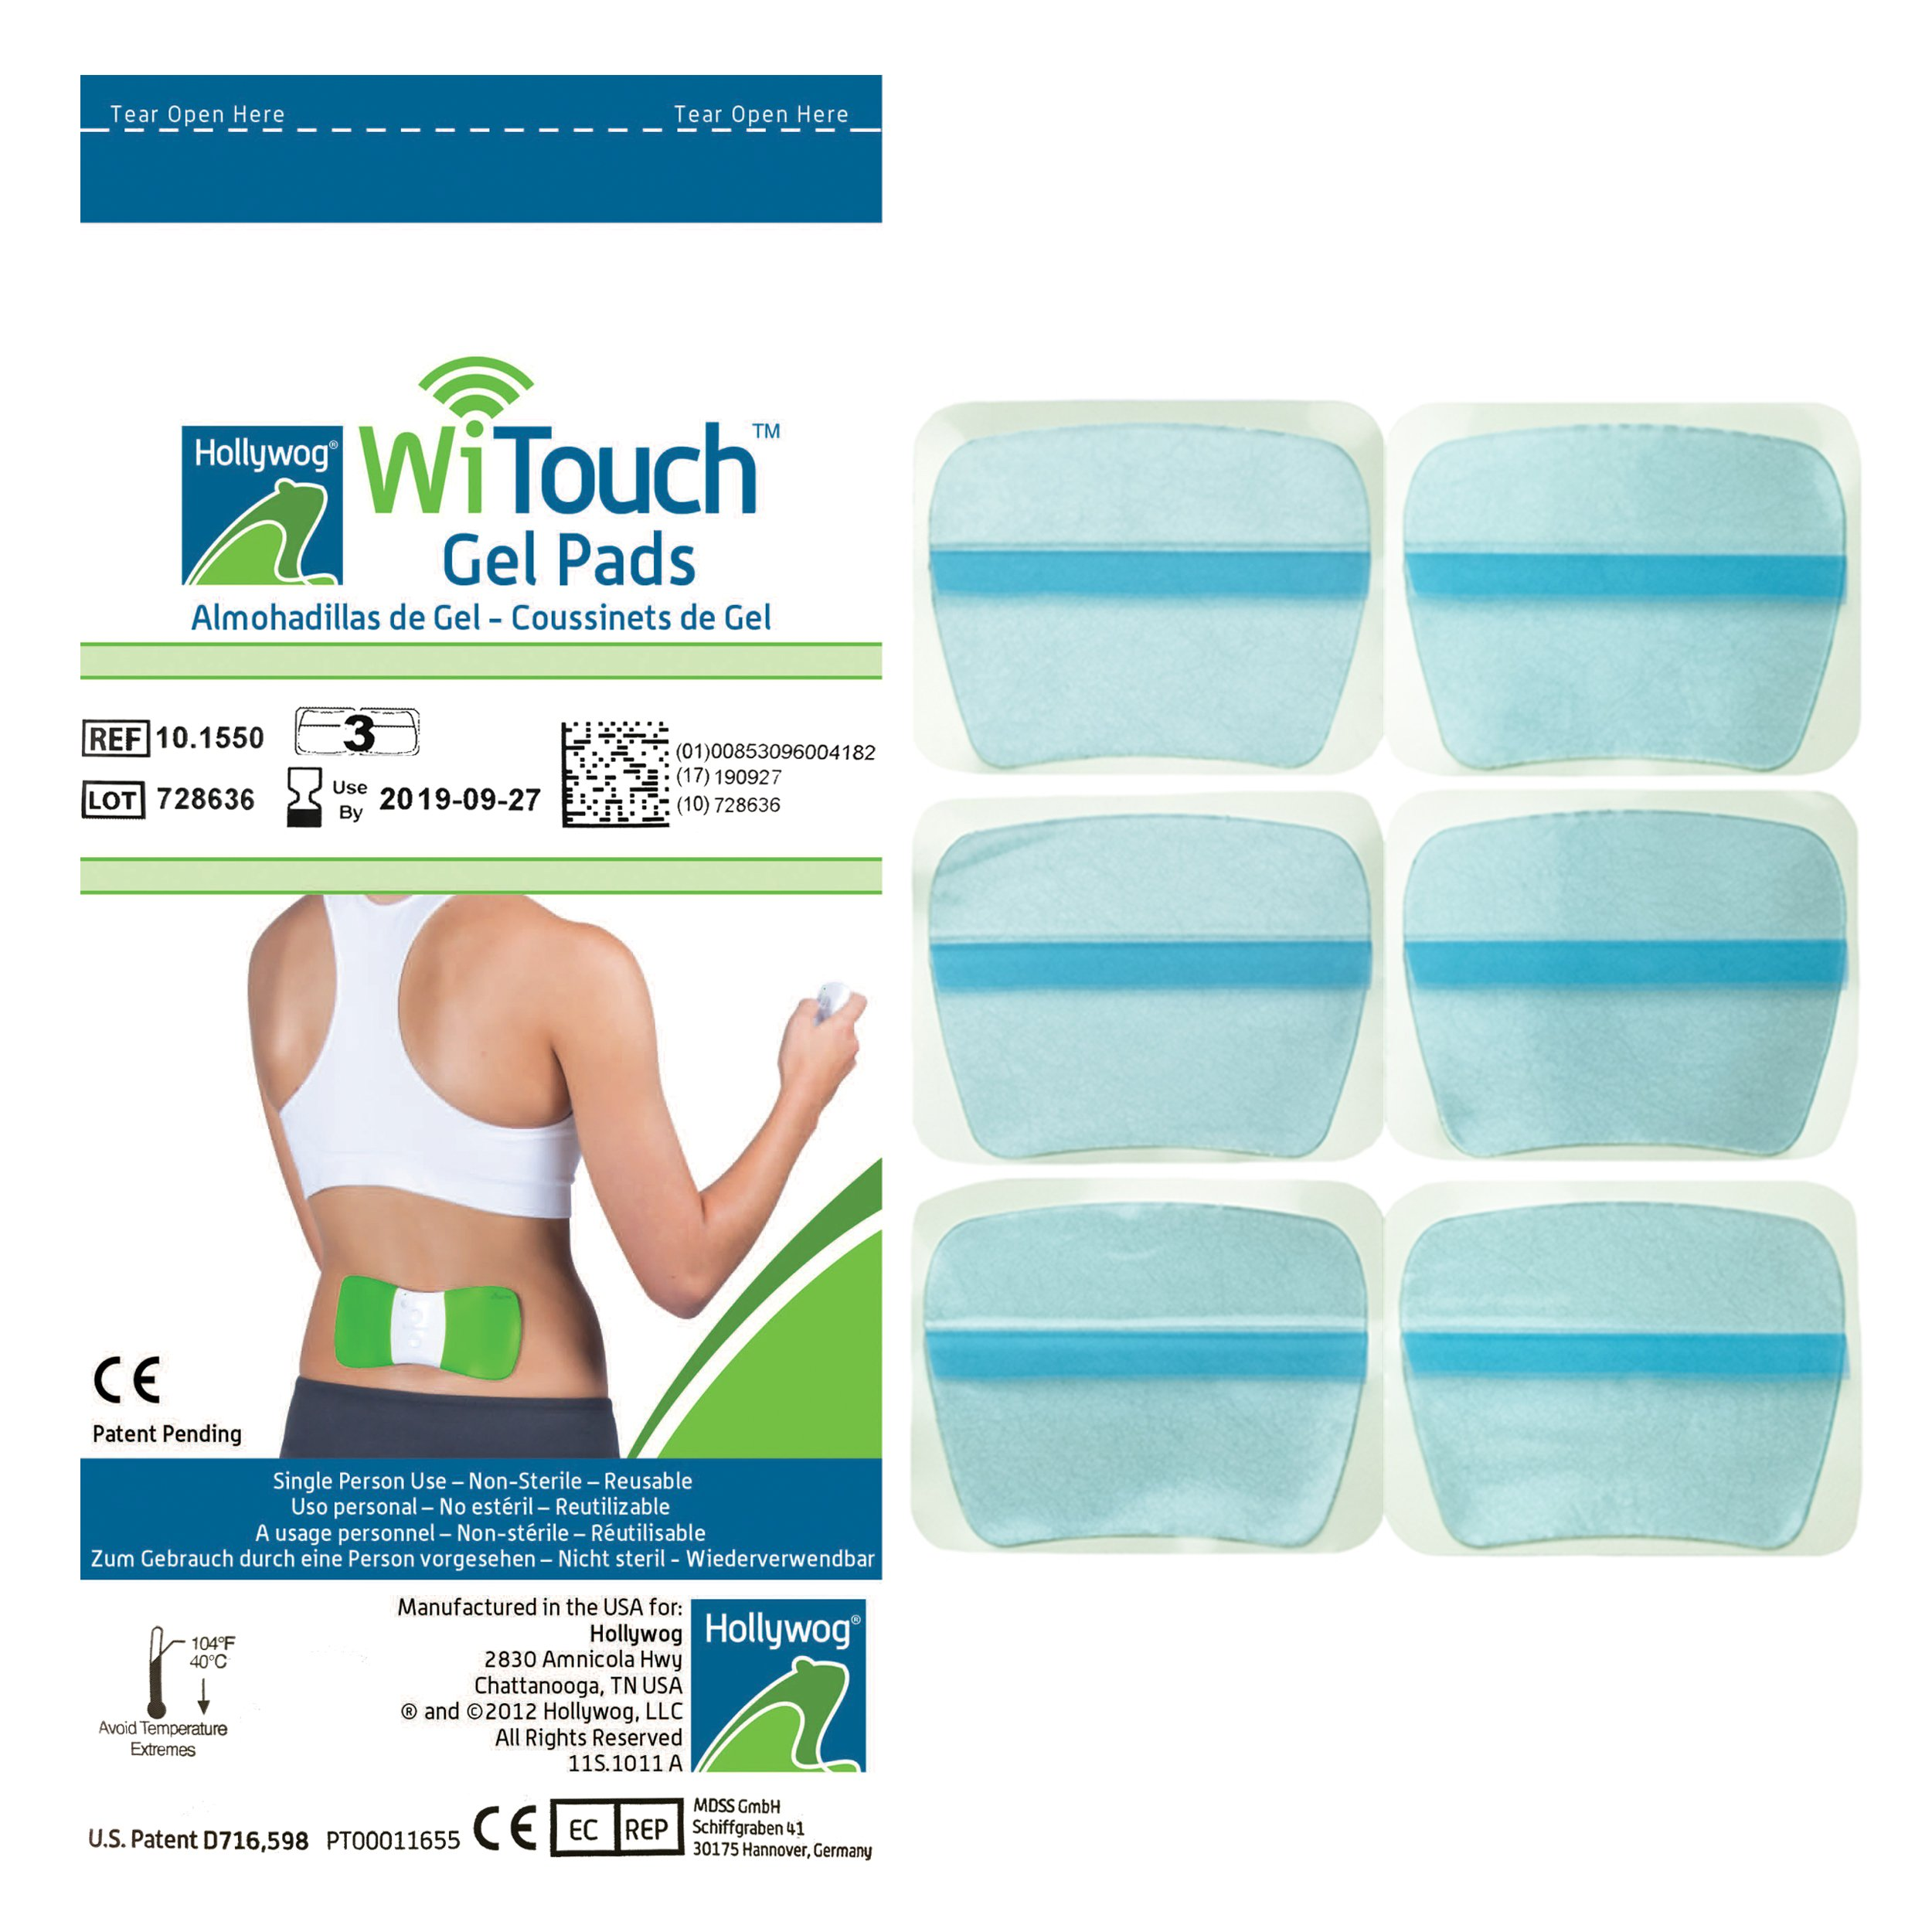 Witouch Gel Pad Refills - 1 Pack of 6 Pads (3 Pairs of Gel Pads)